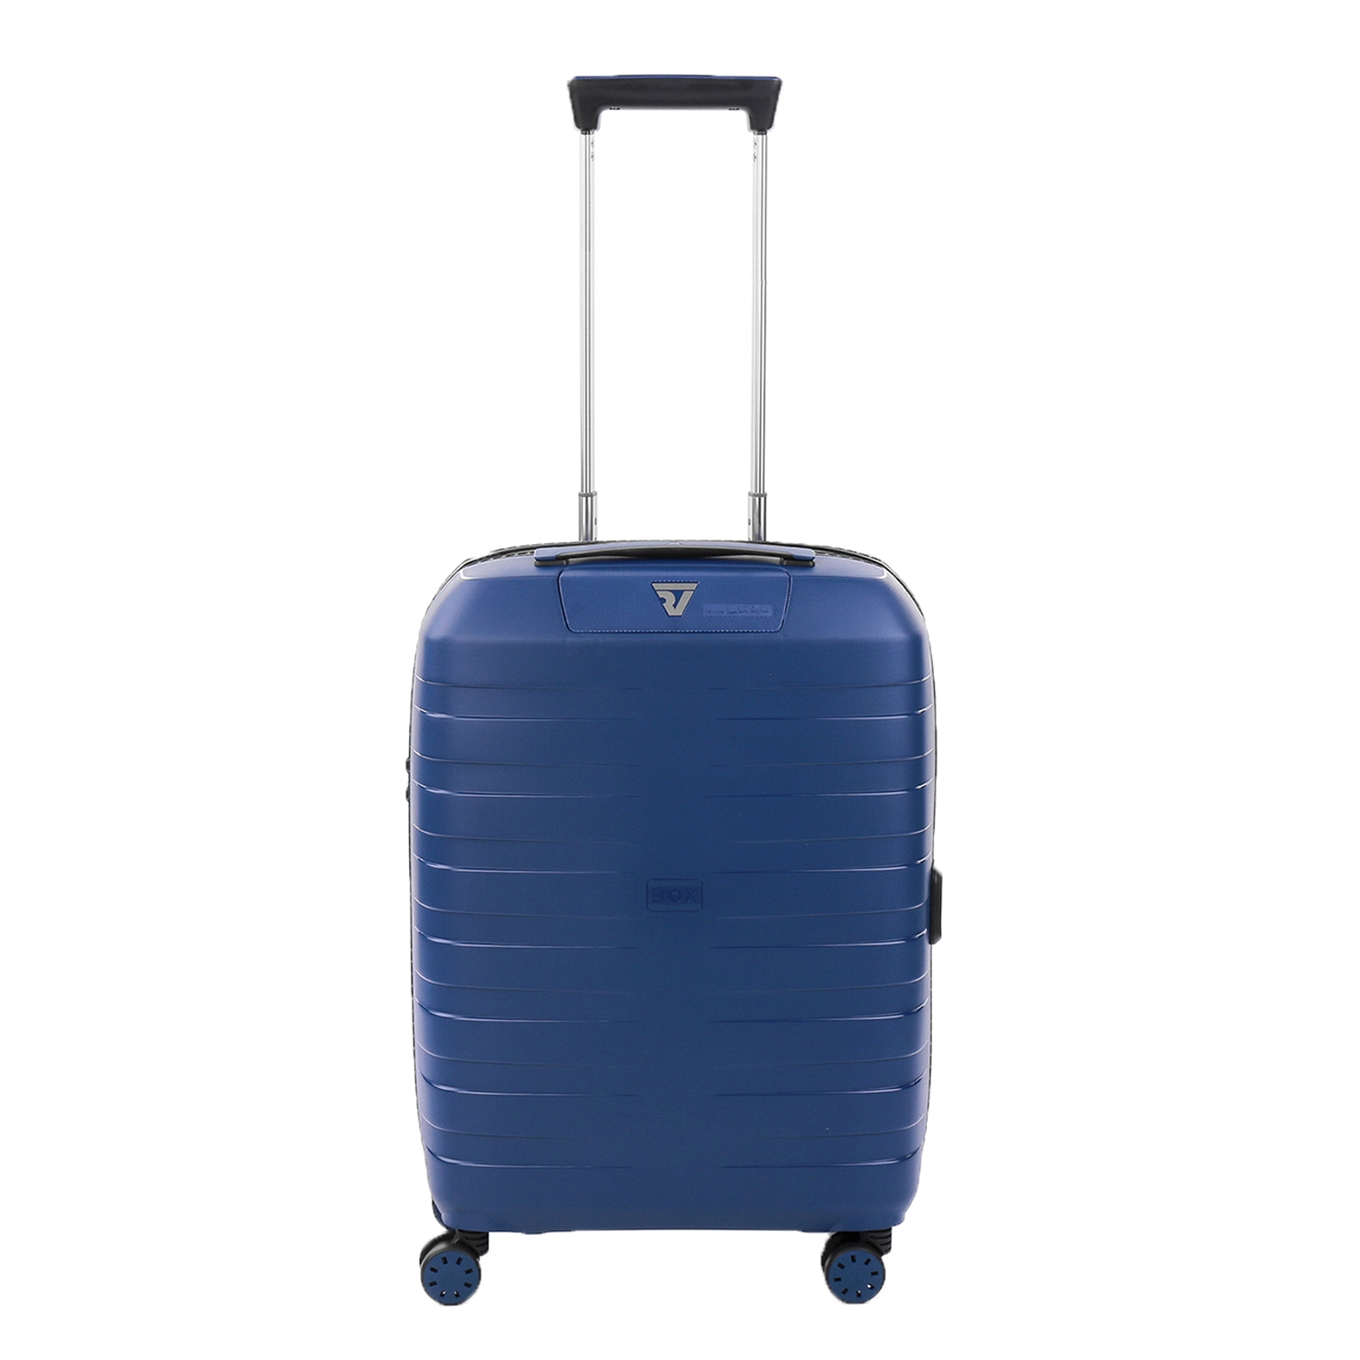 Roncato Box 4.0 4 Wiel Cabin Trolley 55/20-23 navy Harde Koffer <br/></noscript><img class=